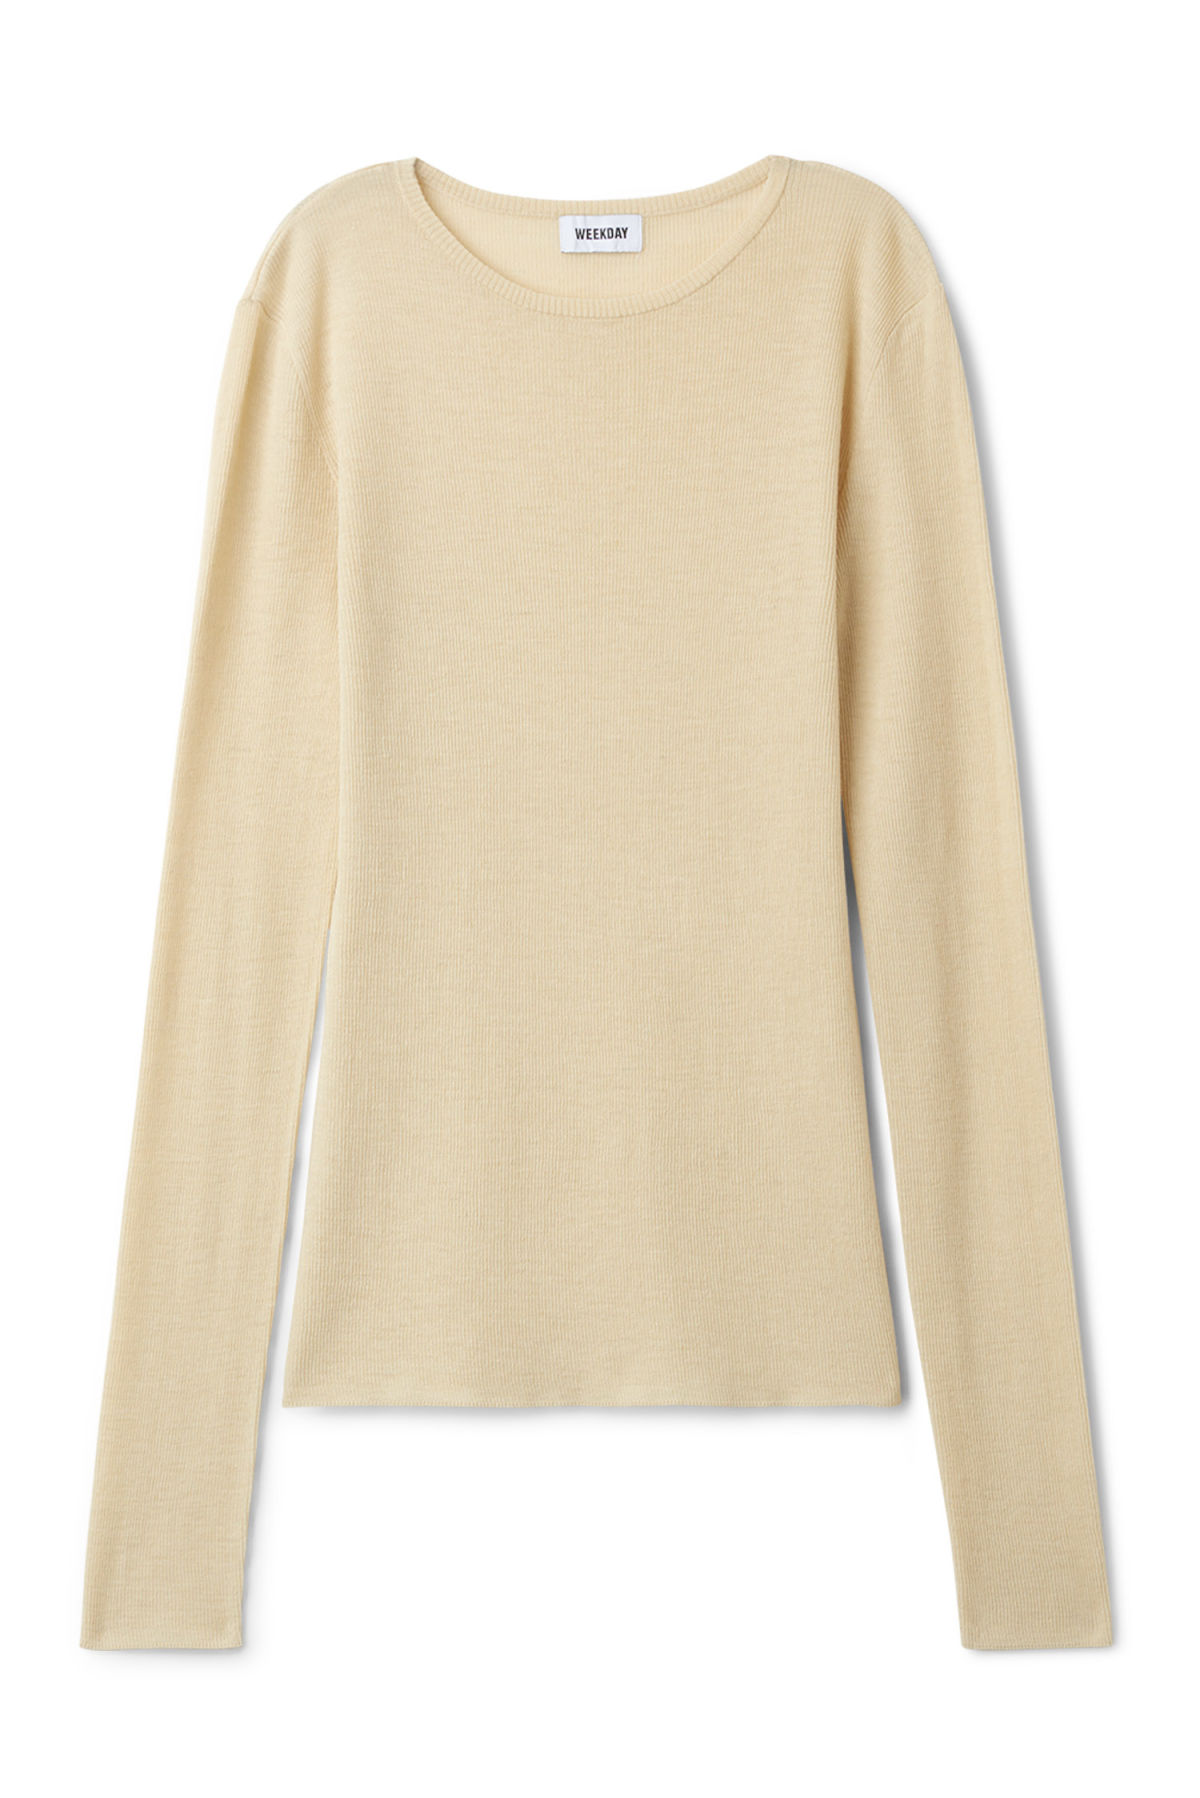 Front image of Weekday melodic top in beige